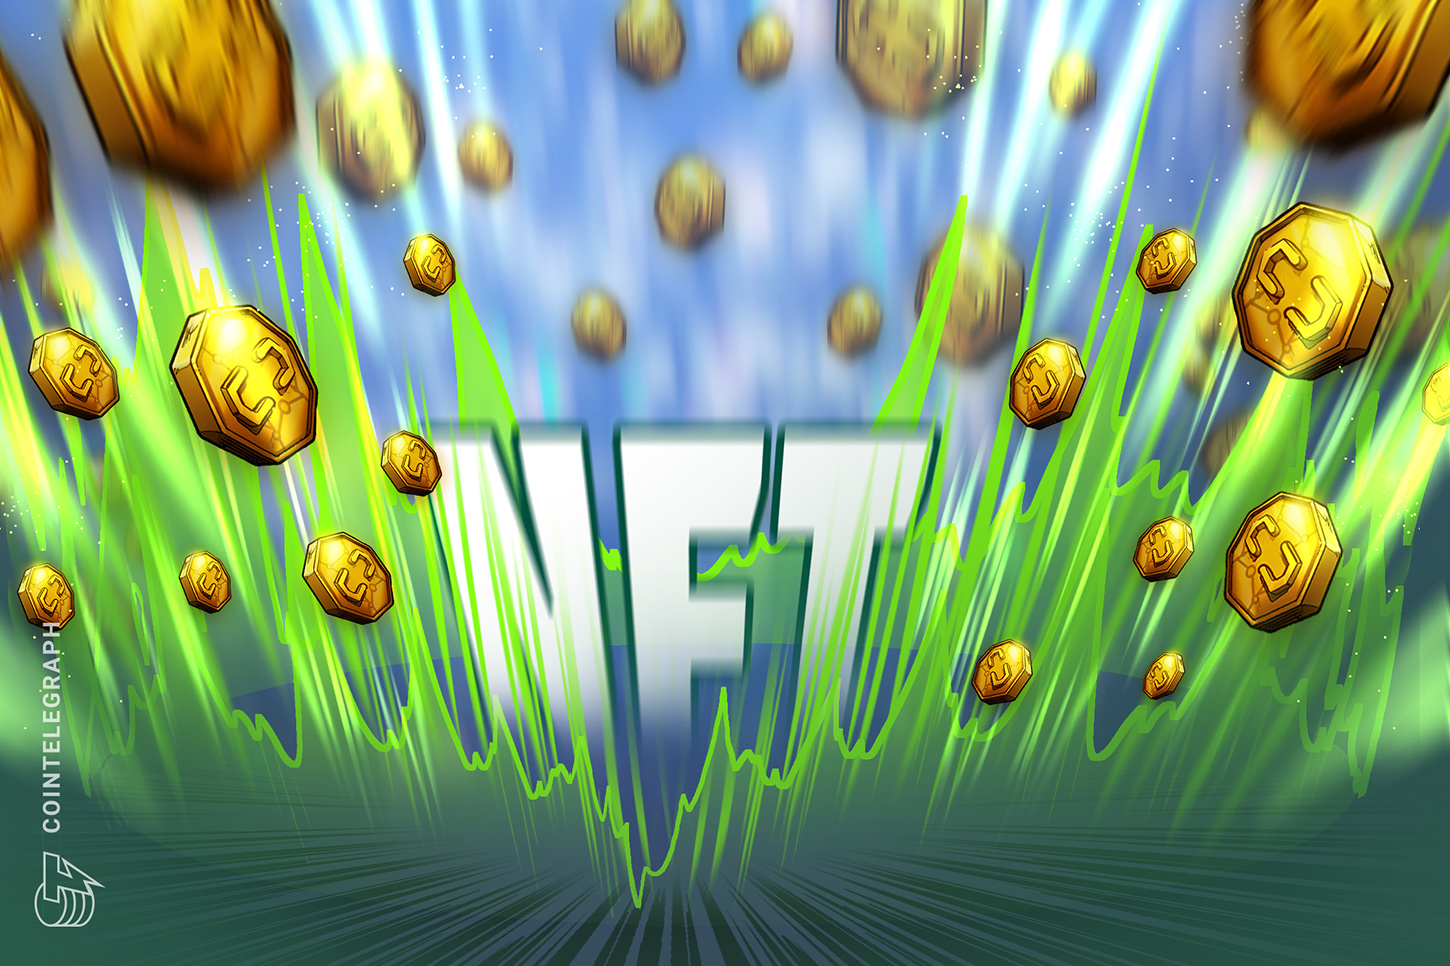 Spike in digital land and NFT sales push Axie Infinity (AXS) price to new highs